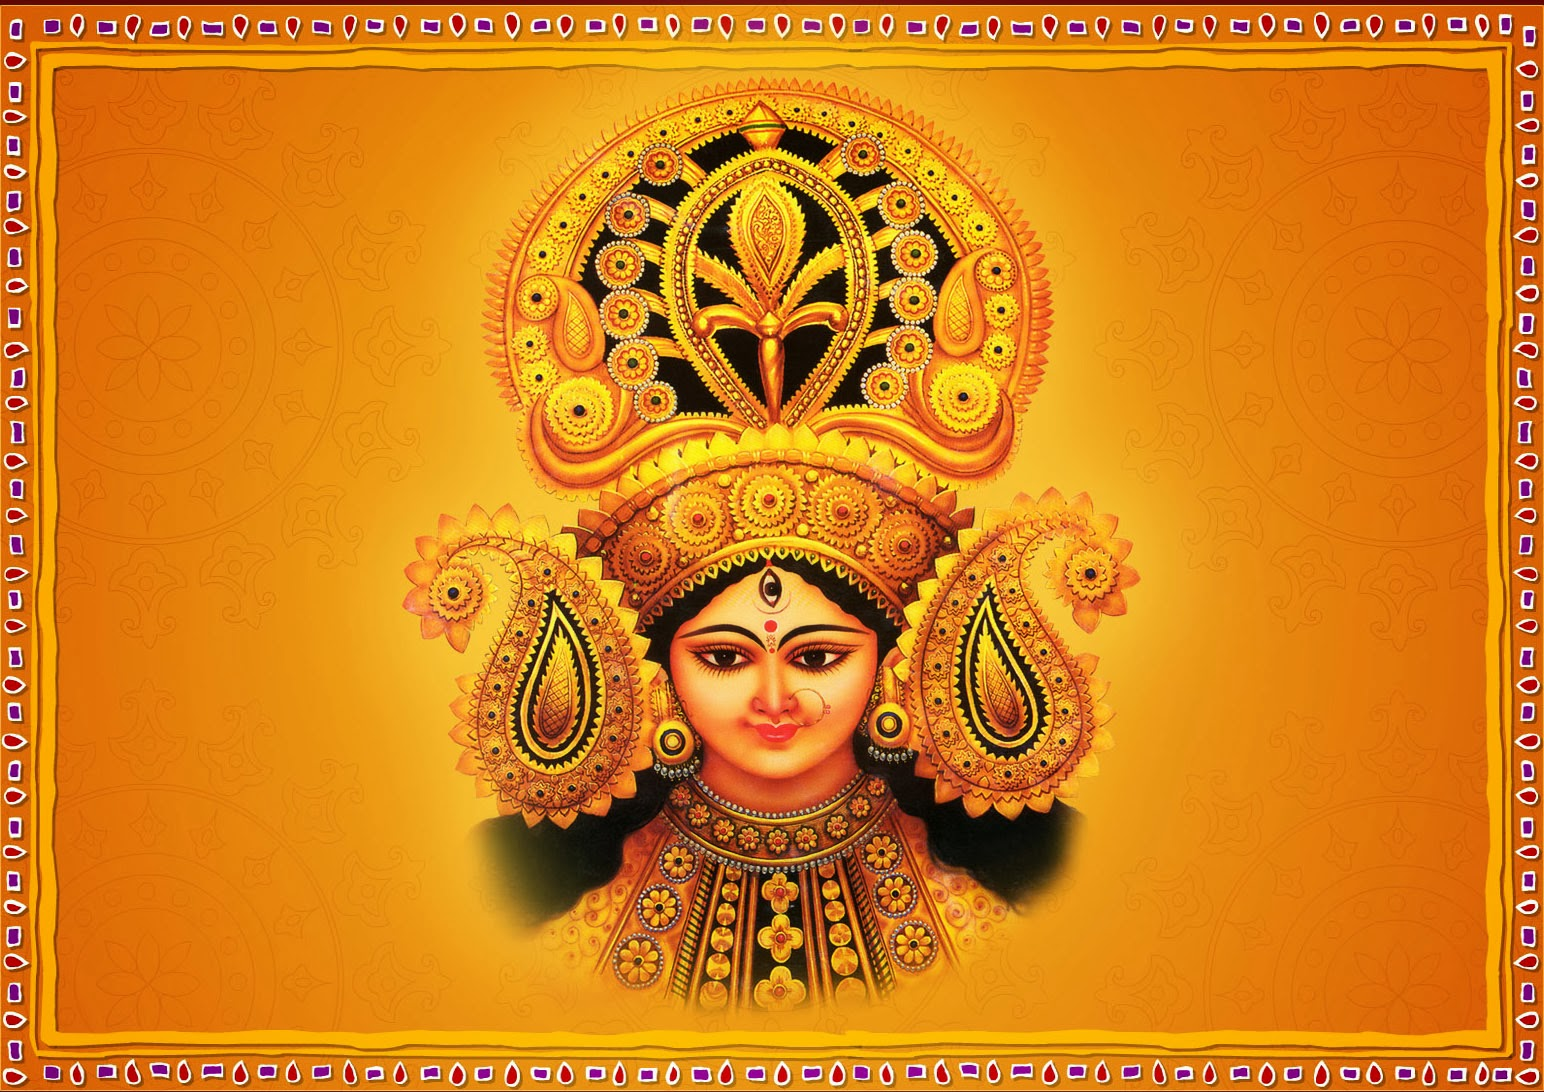 Free Download Maa Durga Wallpaper For Laptop Sharing Is Caring Facebook Twitter Google Pinterest